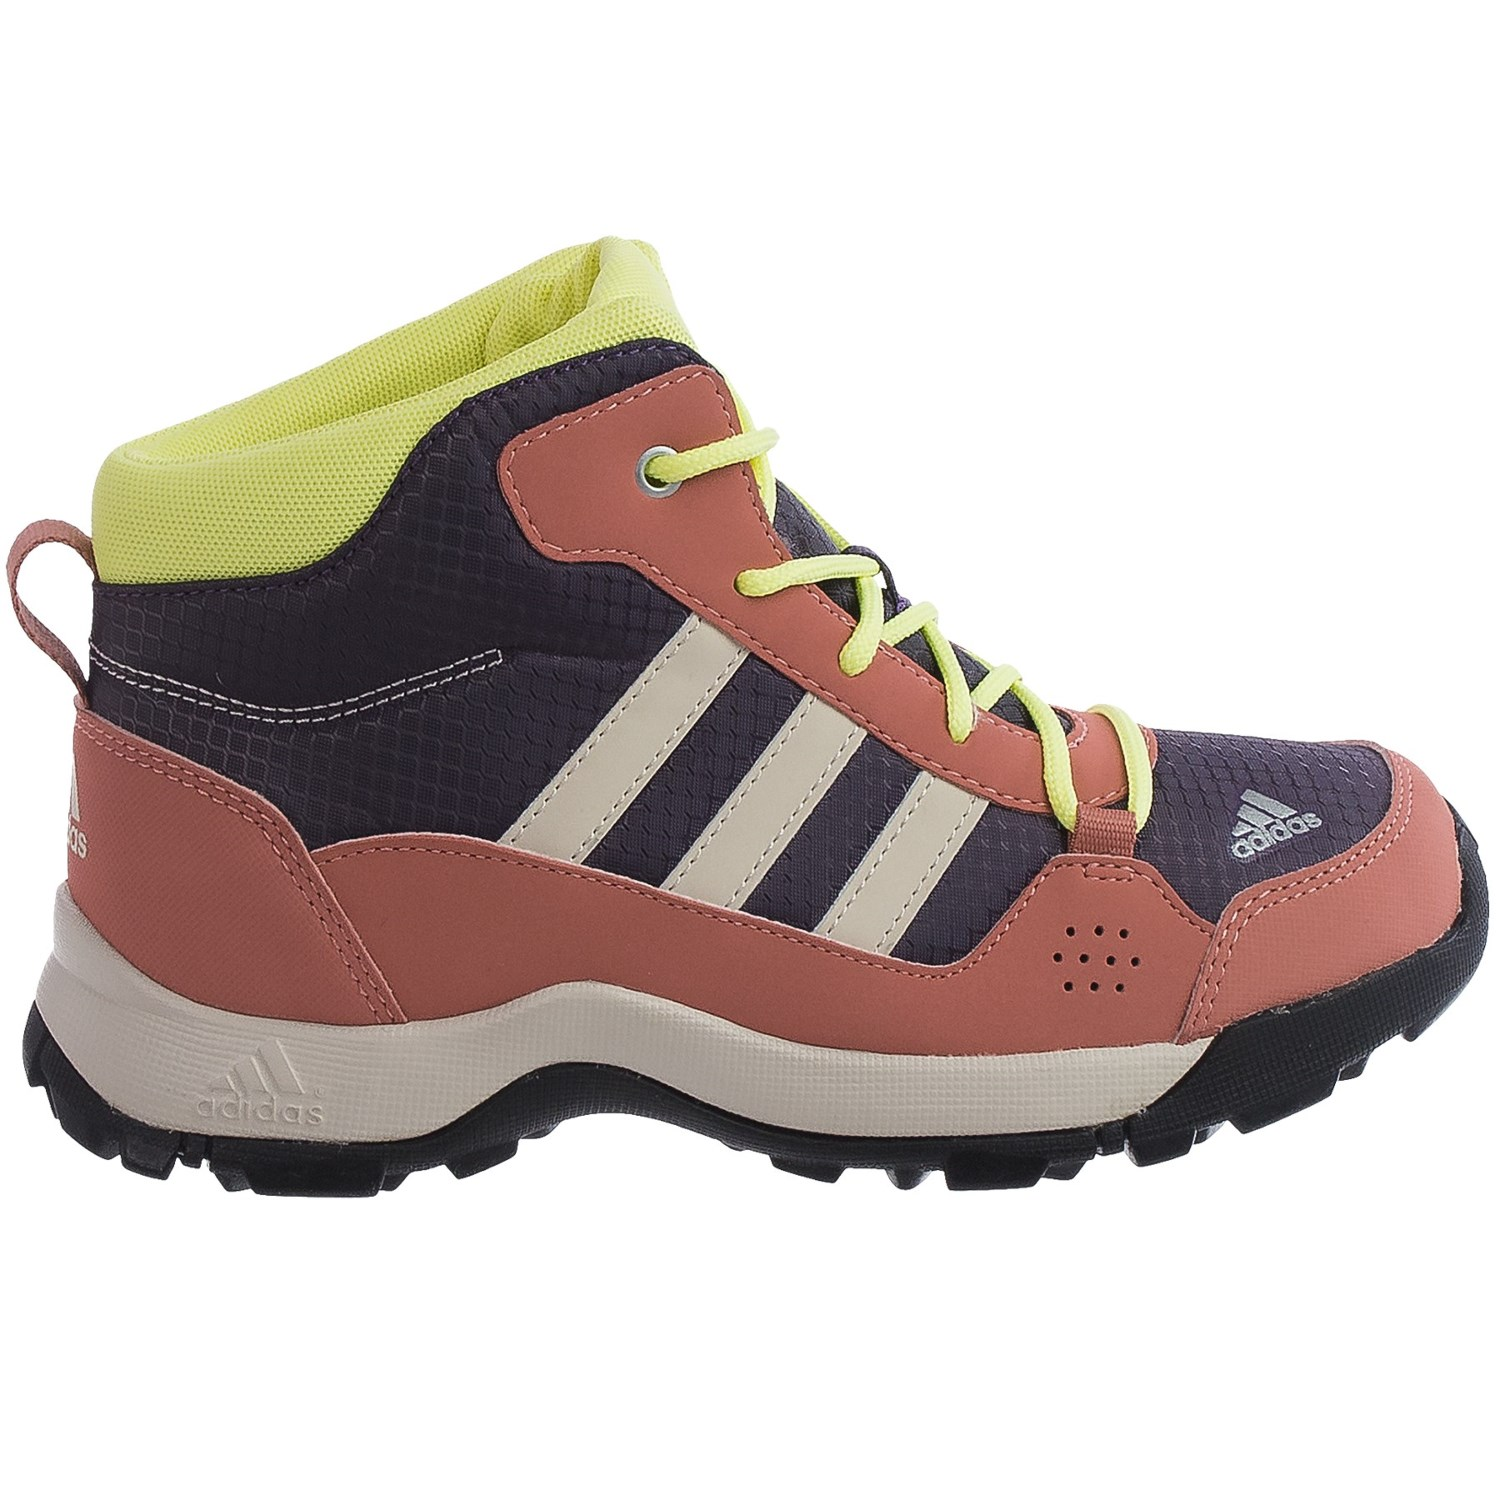 adidas hyperhiker mid trail shoes for little and big kids